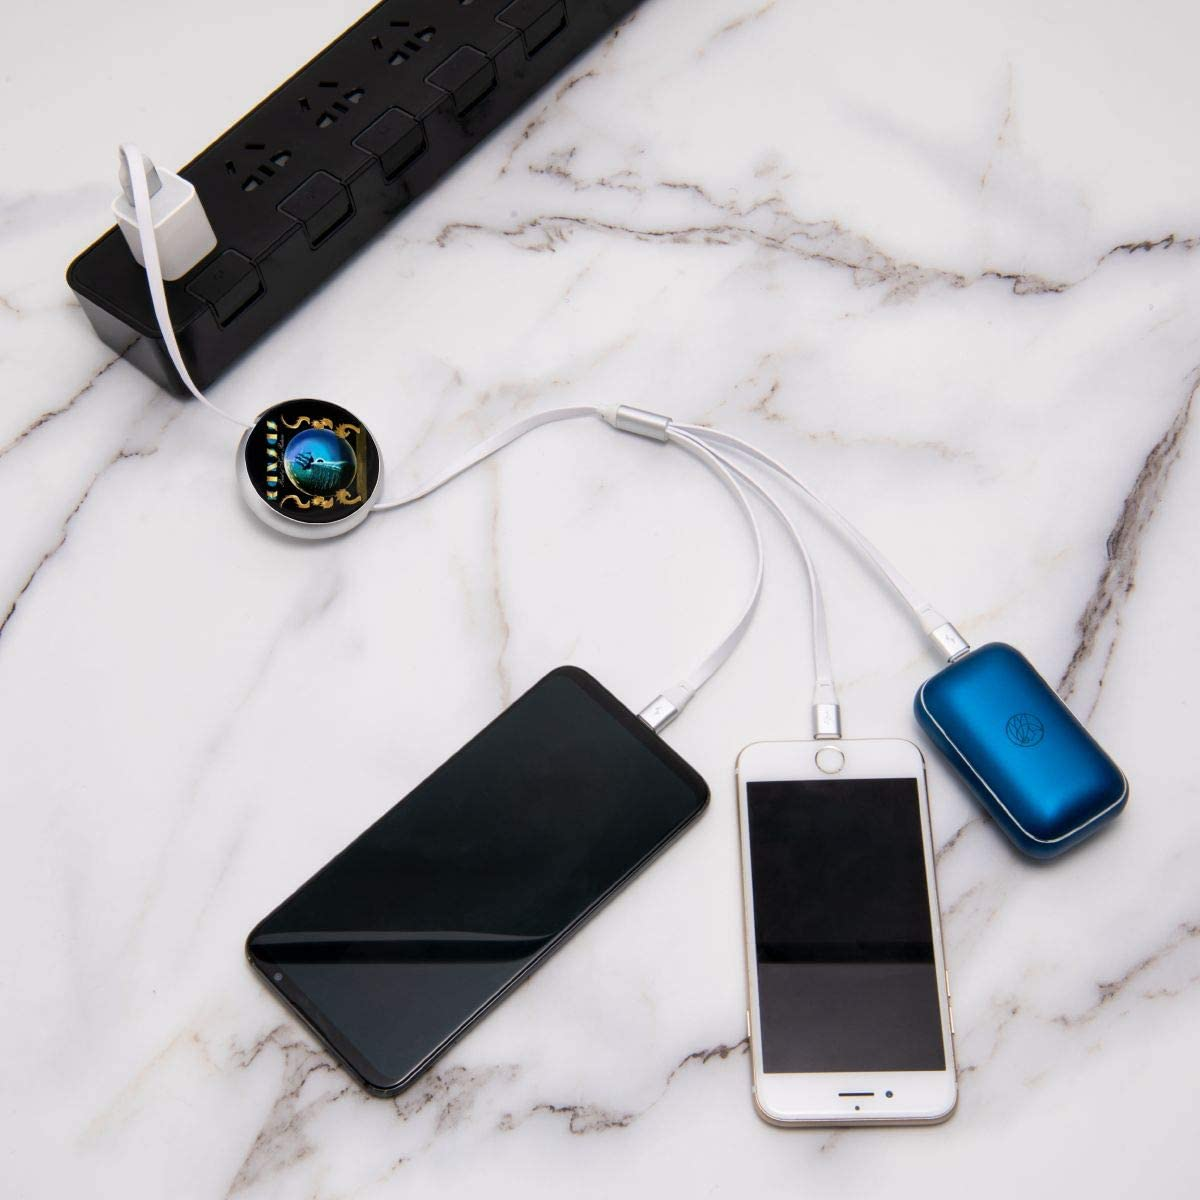 Fast Charging Data Sync Transfer Cord USB Charger Kansas Band Three-in-One Portable Charger